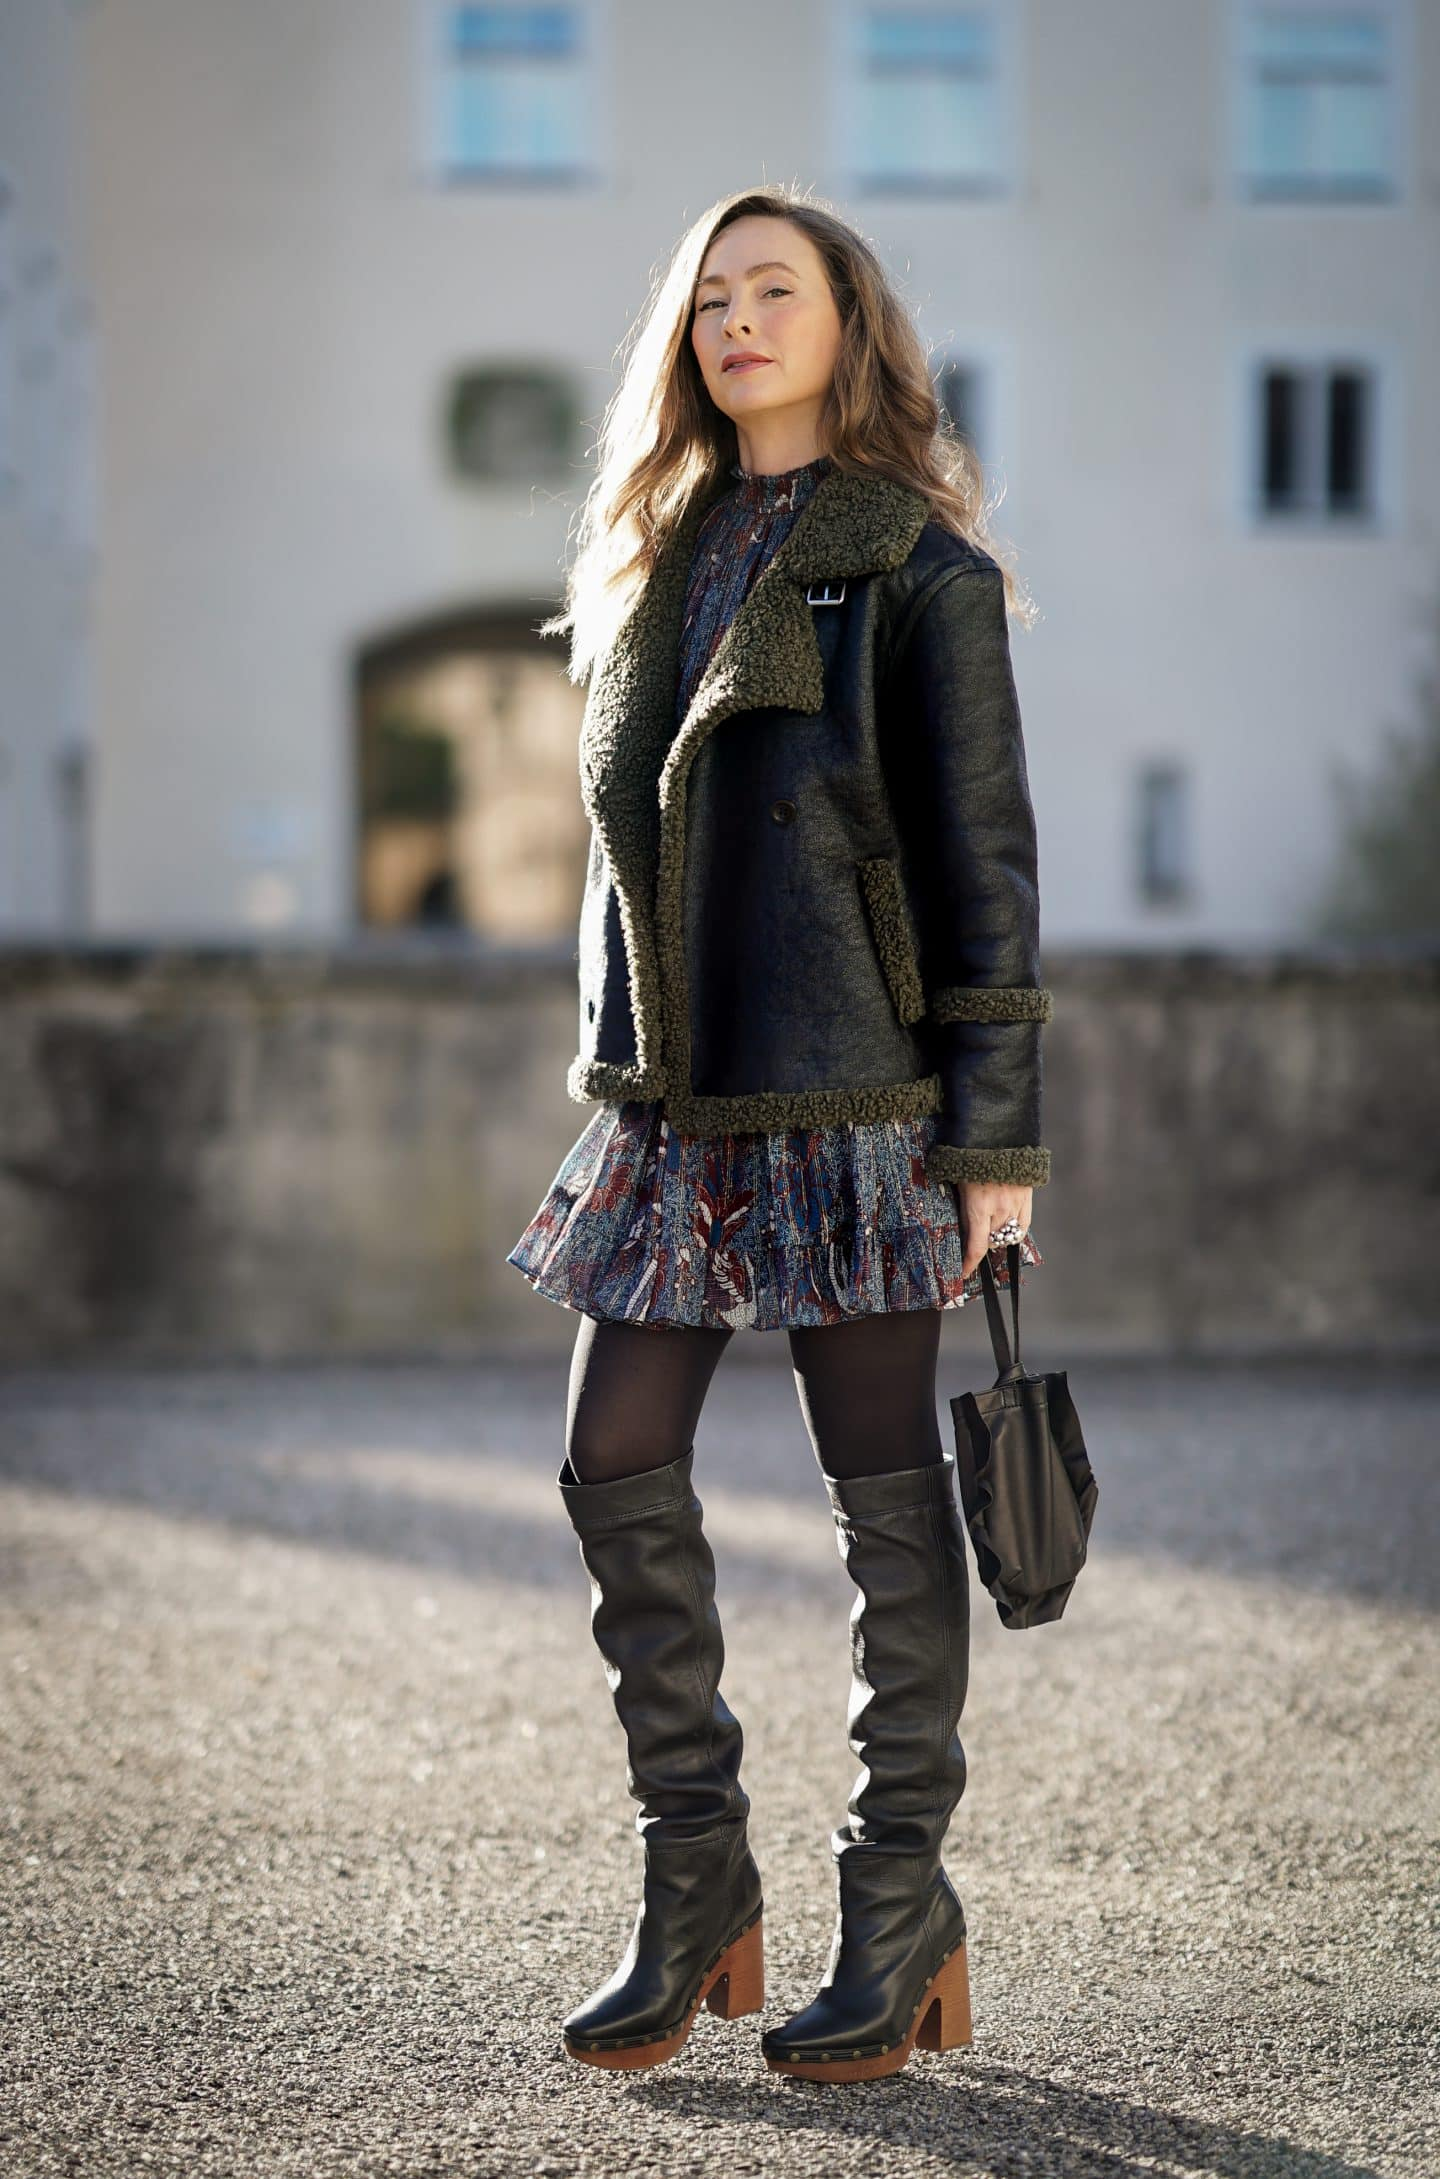 Boho Kleid im Winter stylen Nicki Nowicki Bloggerin 40 plus